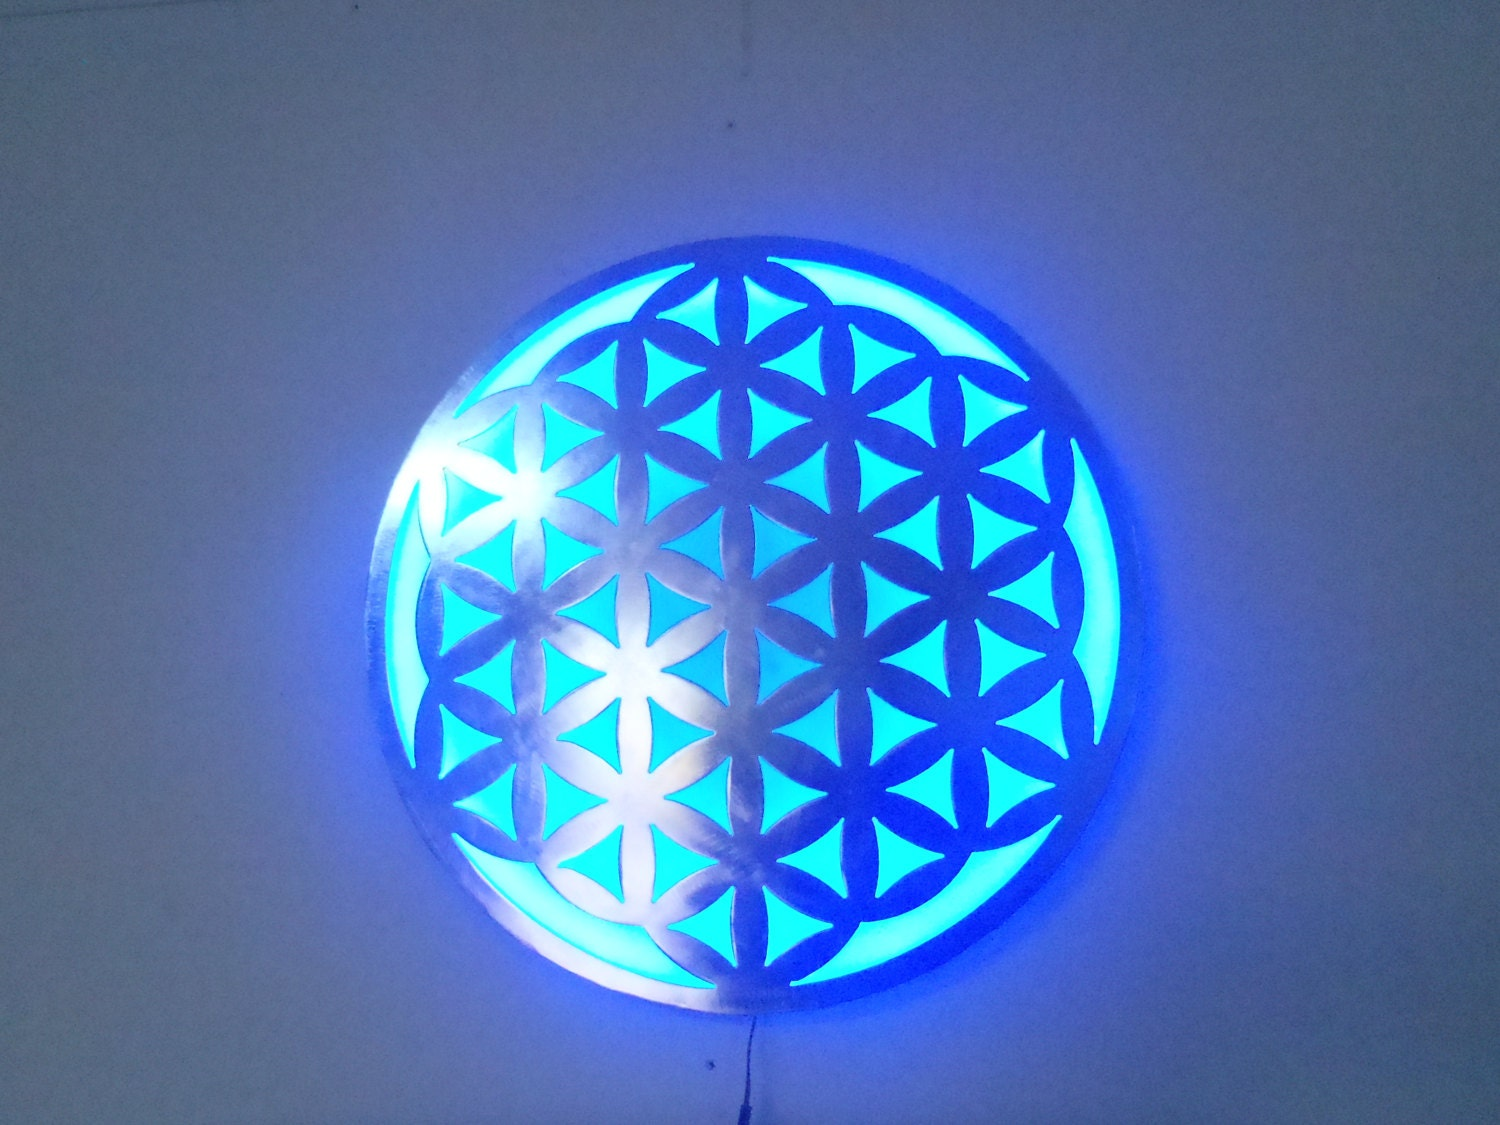 Wall Decor Lamp : Flower of life metal art wall lamp with led lights